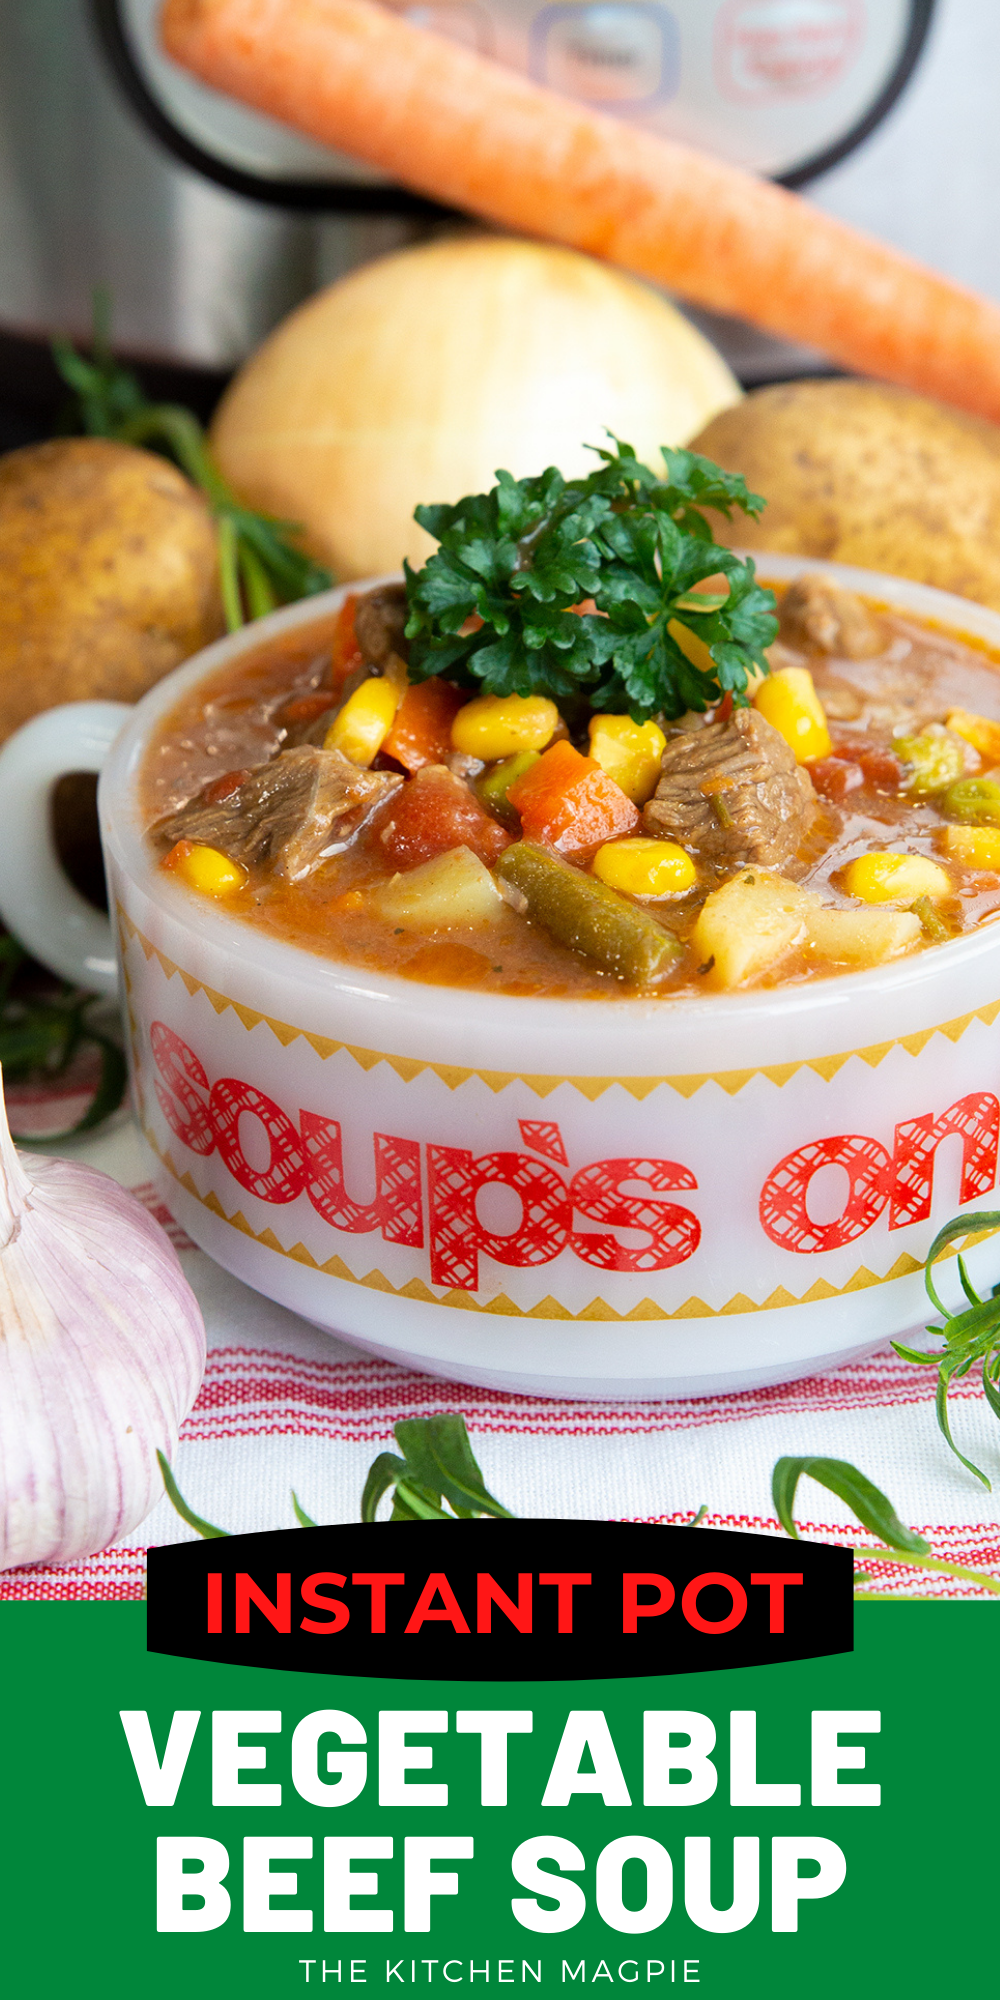 This Instant Pot vegetable beef soup is a delicious, hearty soup that is absolutely a snap to make in your pressure cooker! #instantpot #soup #beefsoup #vegetablesoup